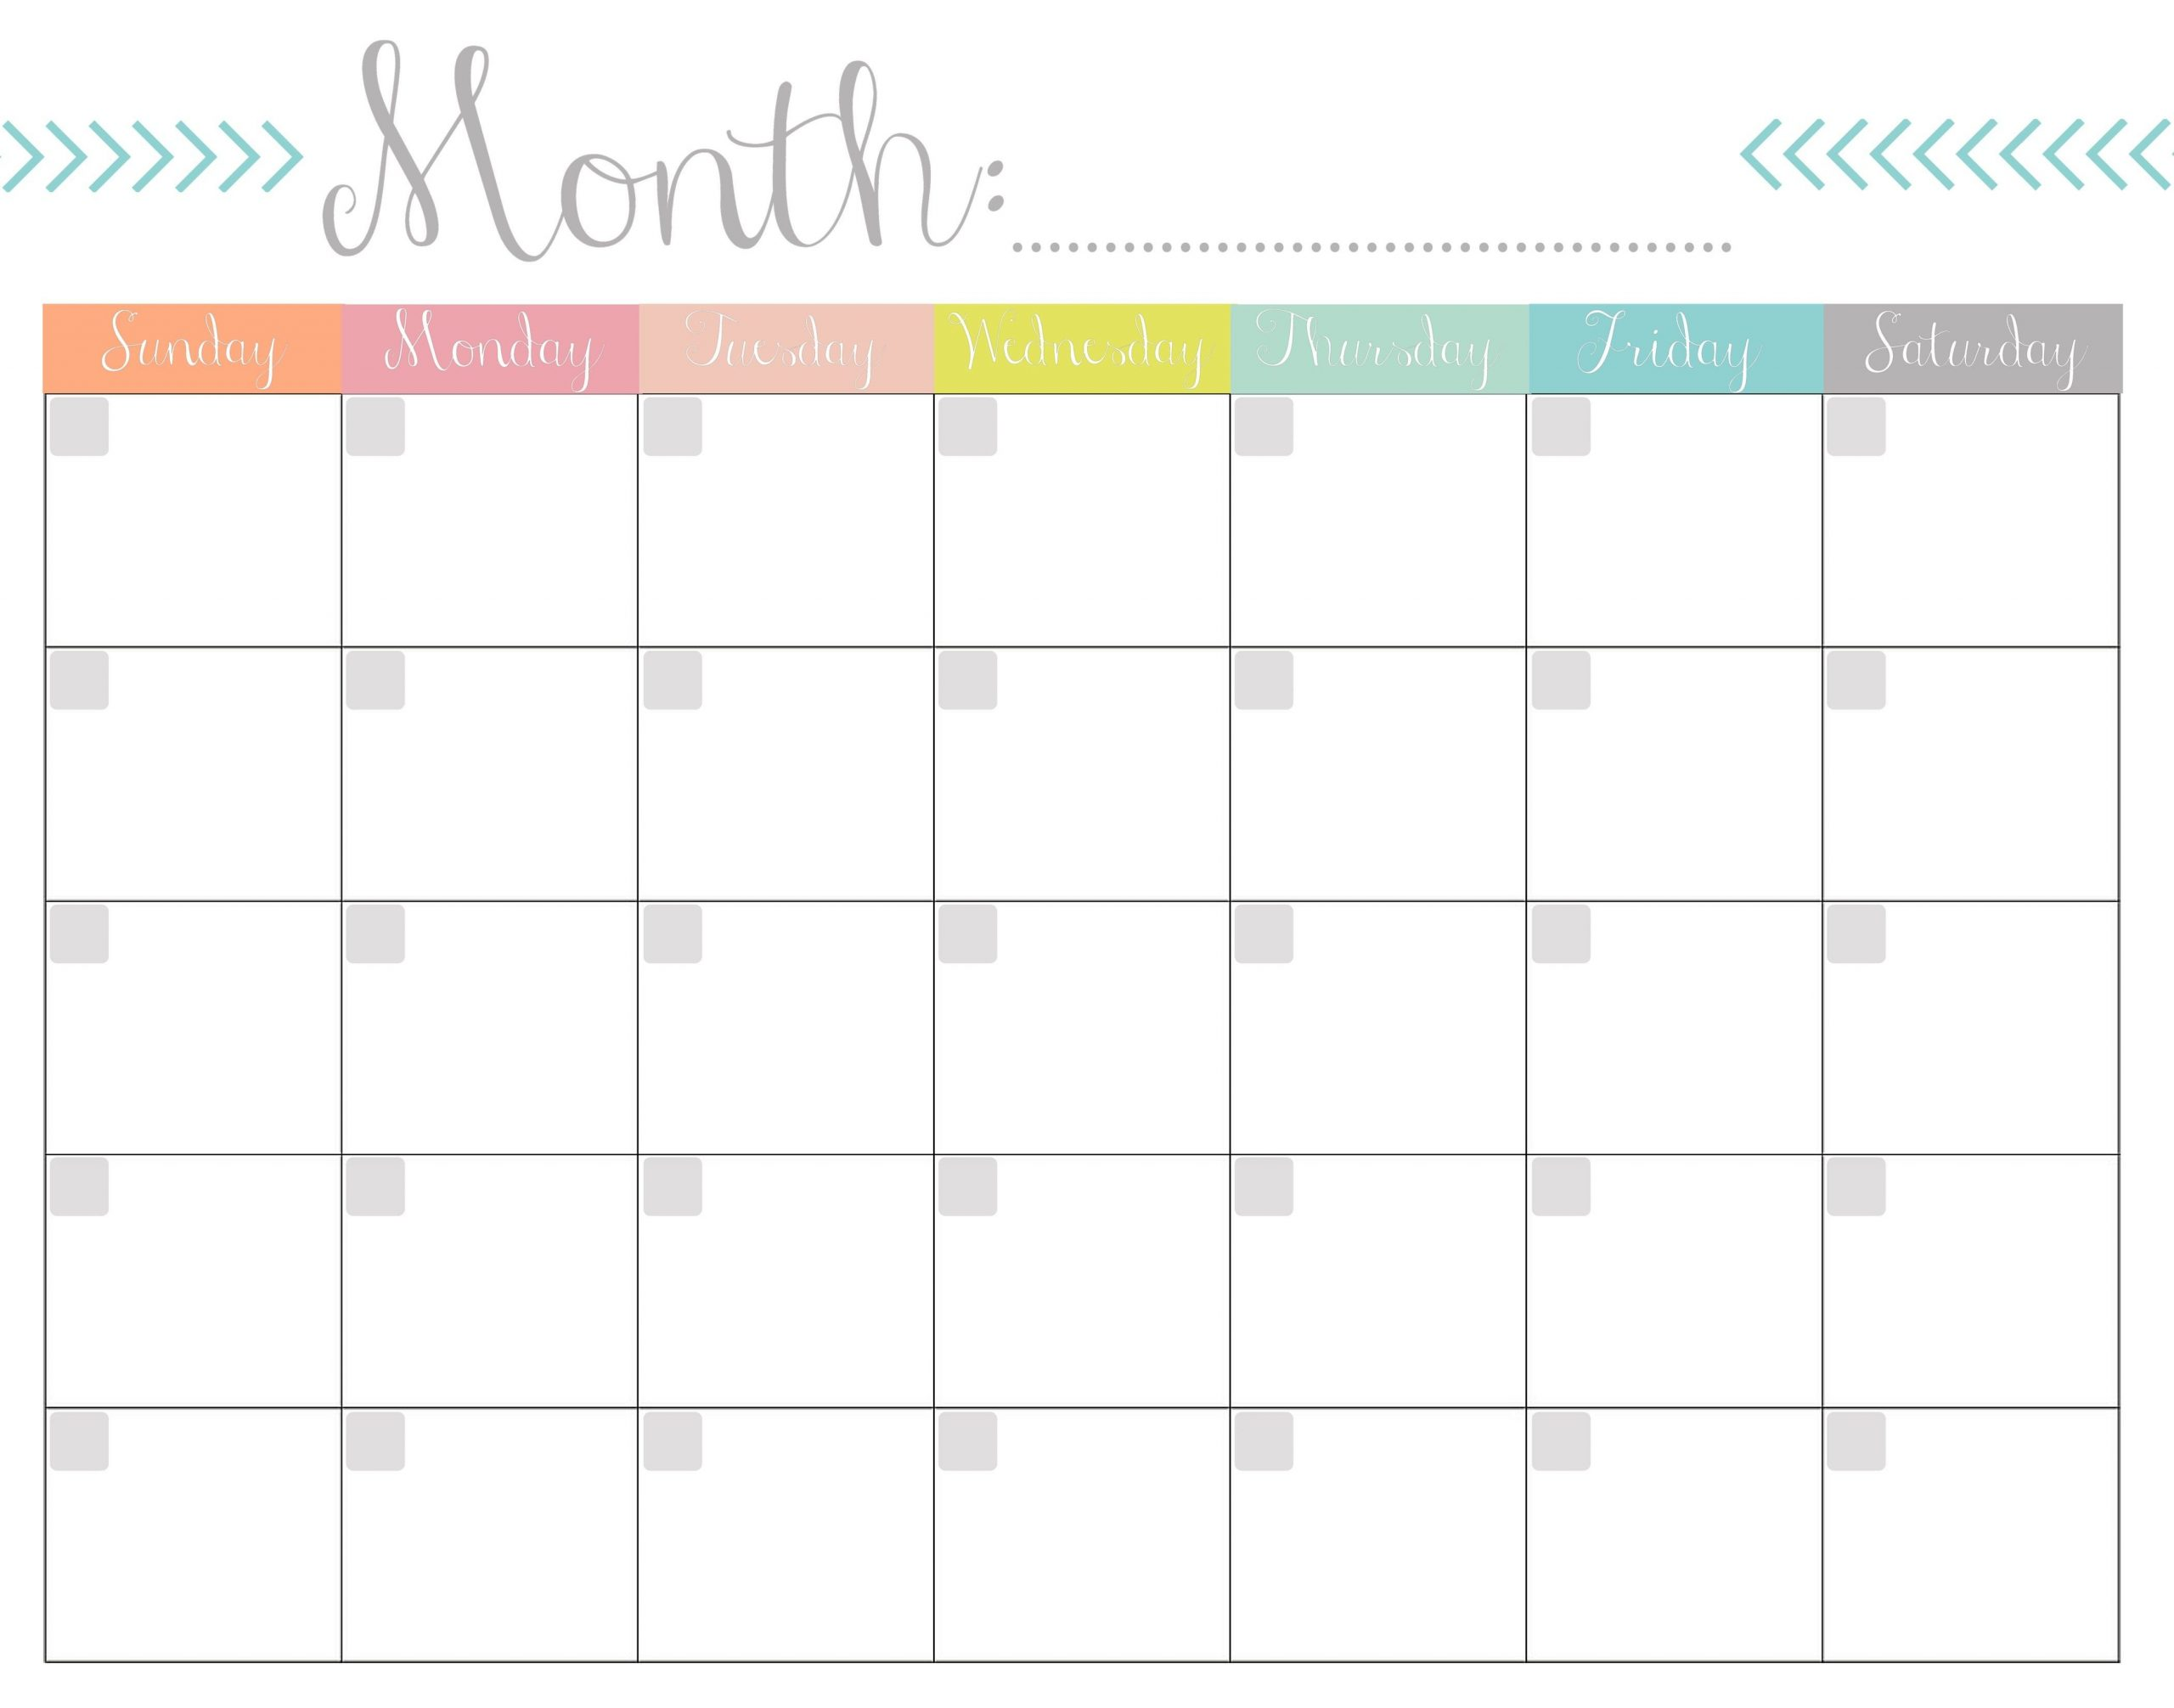 Blank Calendar 2020 Printable Monthly Payday Bills And Due One Week Calendar To Type In